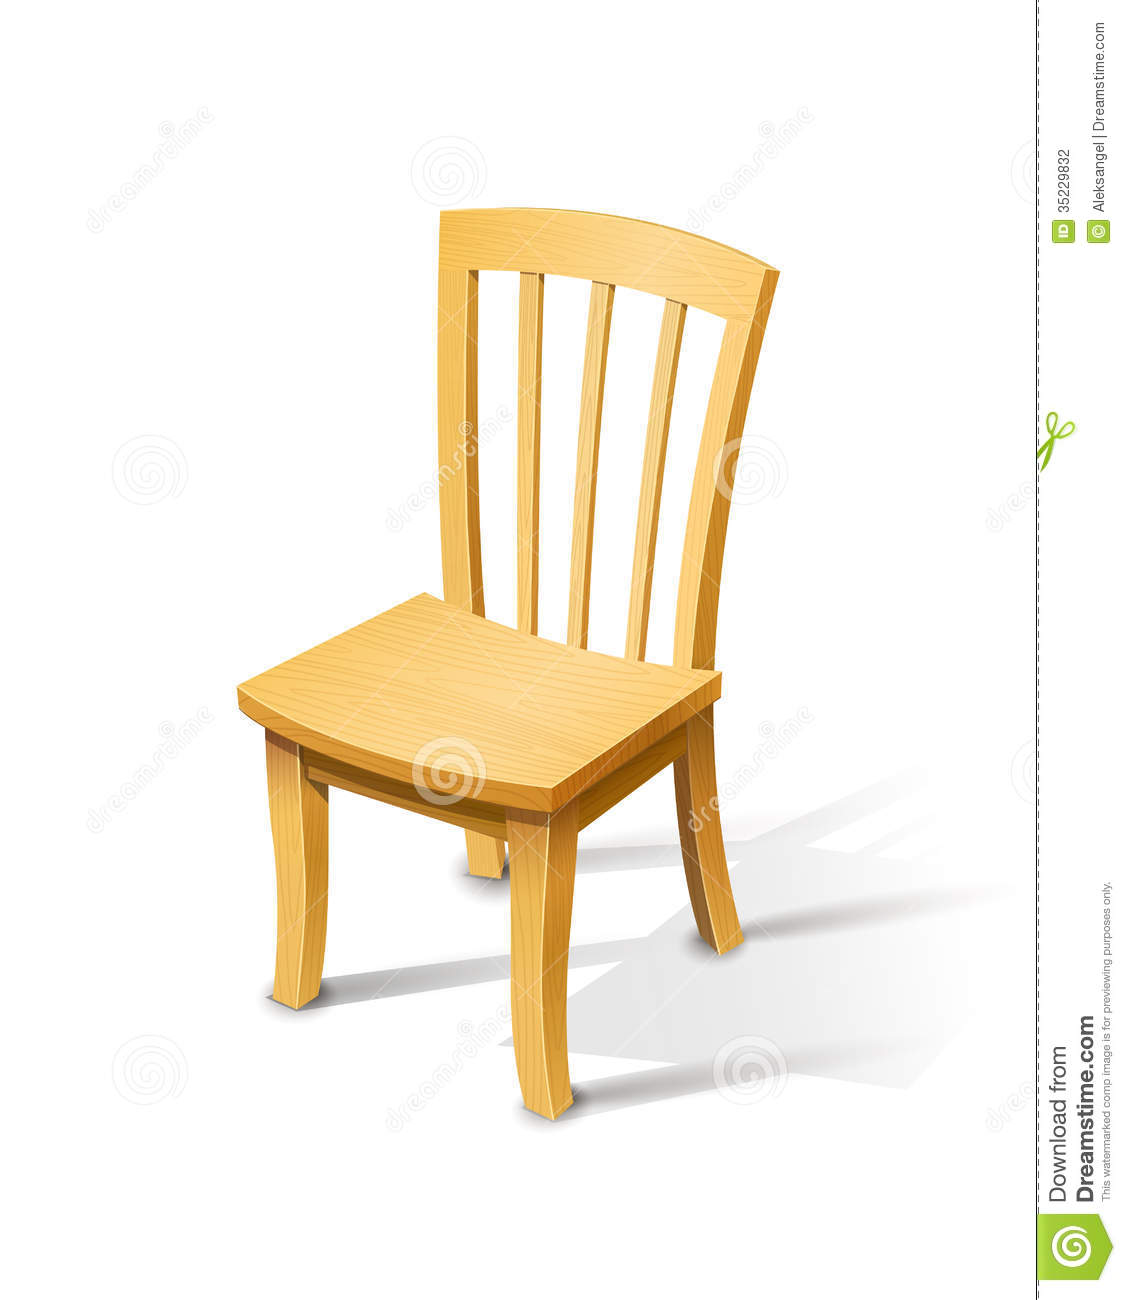 Wooden Chair. Vector Illustration On White Background EPS10 . Full resolution‎  portraiture, nominally Width 1126 Height 1300 pixels, portraiture with #BD830E.